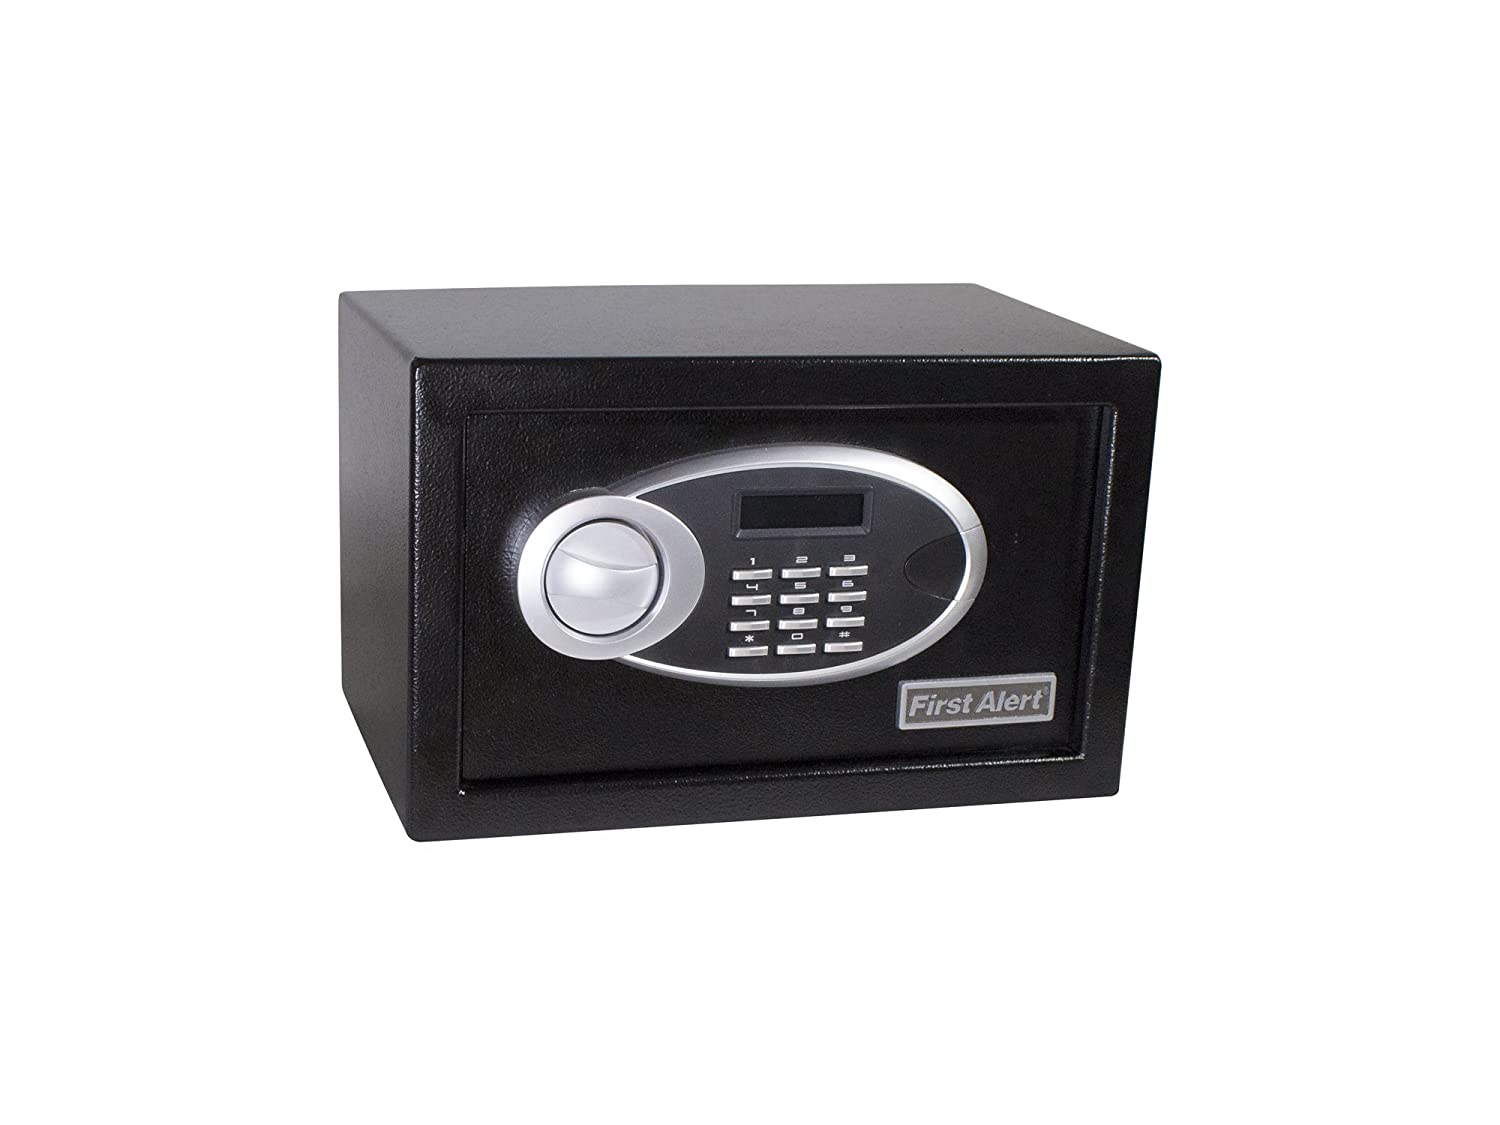 Amazon.com: First Alert 4003DFB Anti-Theft Safe with Digital LOCK, .31 Cubic-Foot, Black: Home Improvement